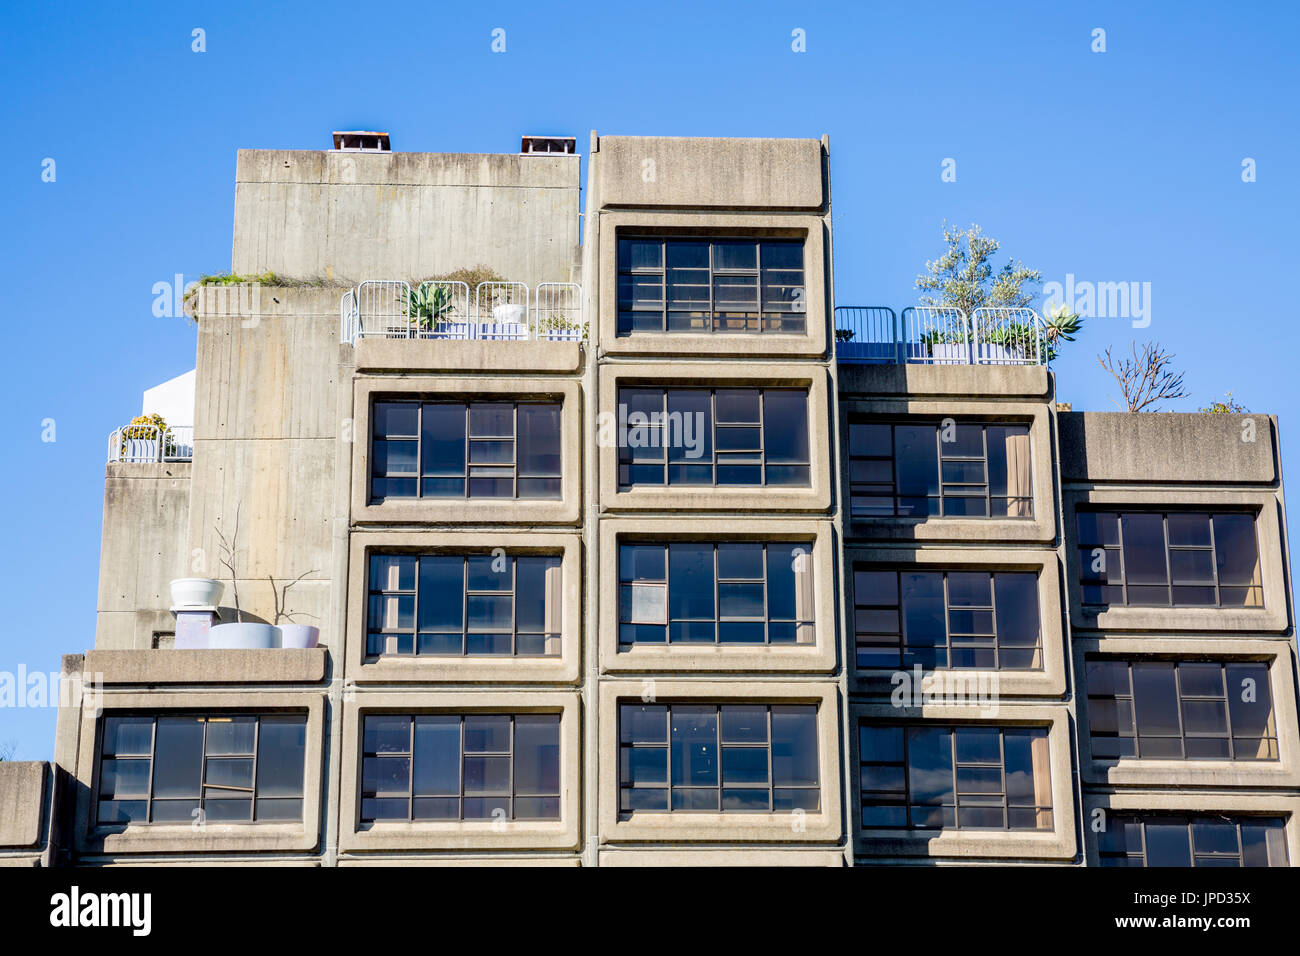 The Sirius public housing building in The Rocks area of Sydney city centre,New south wales,australia - Stock Image